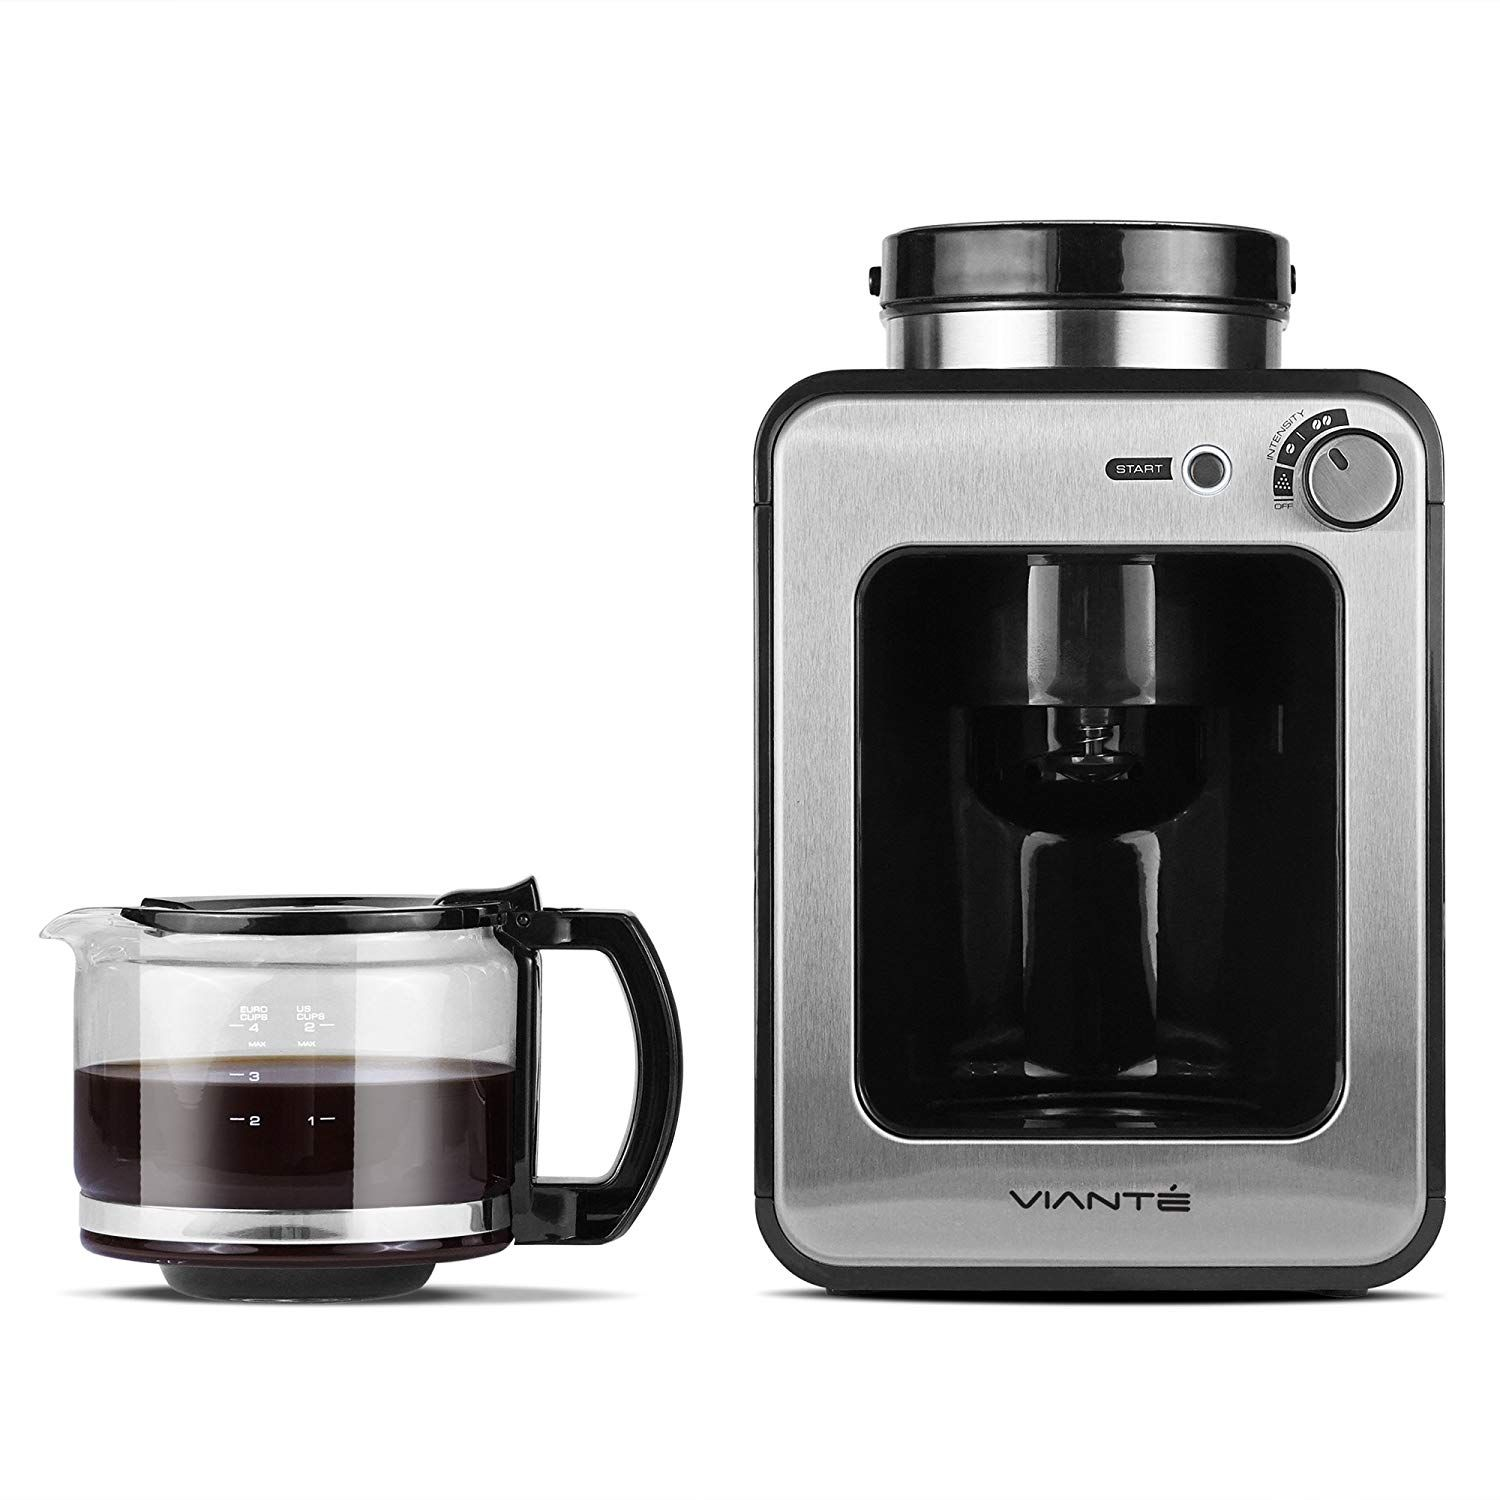 Viante CAF50 Grind and Brew Coffee Maker with